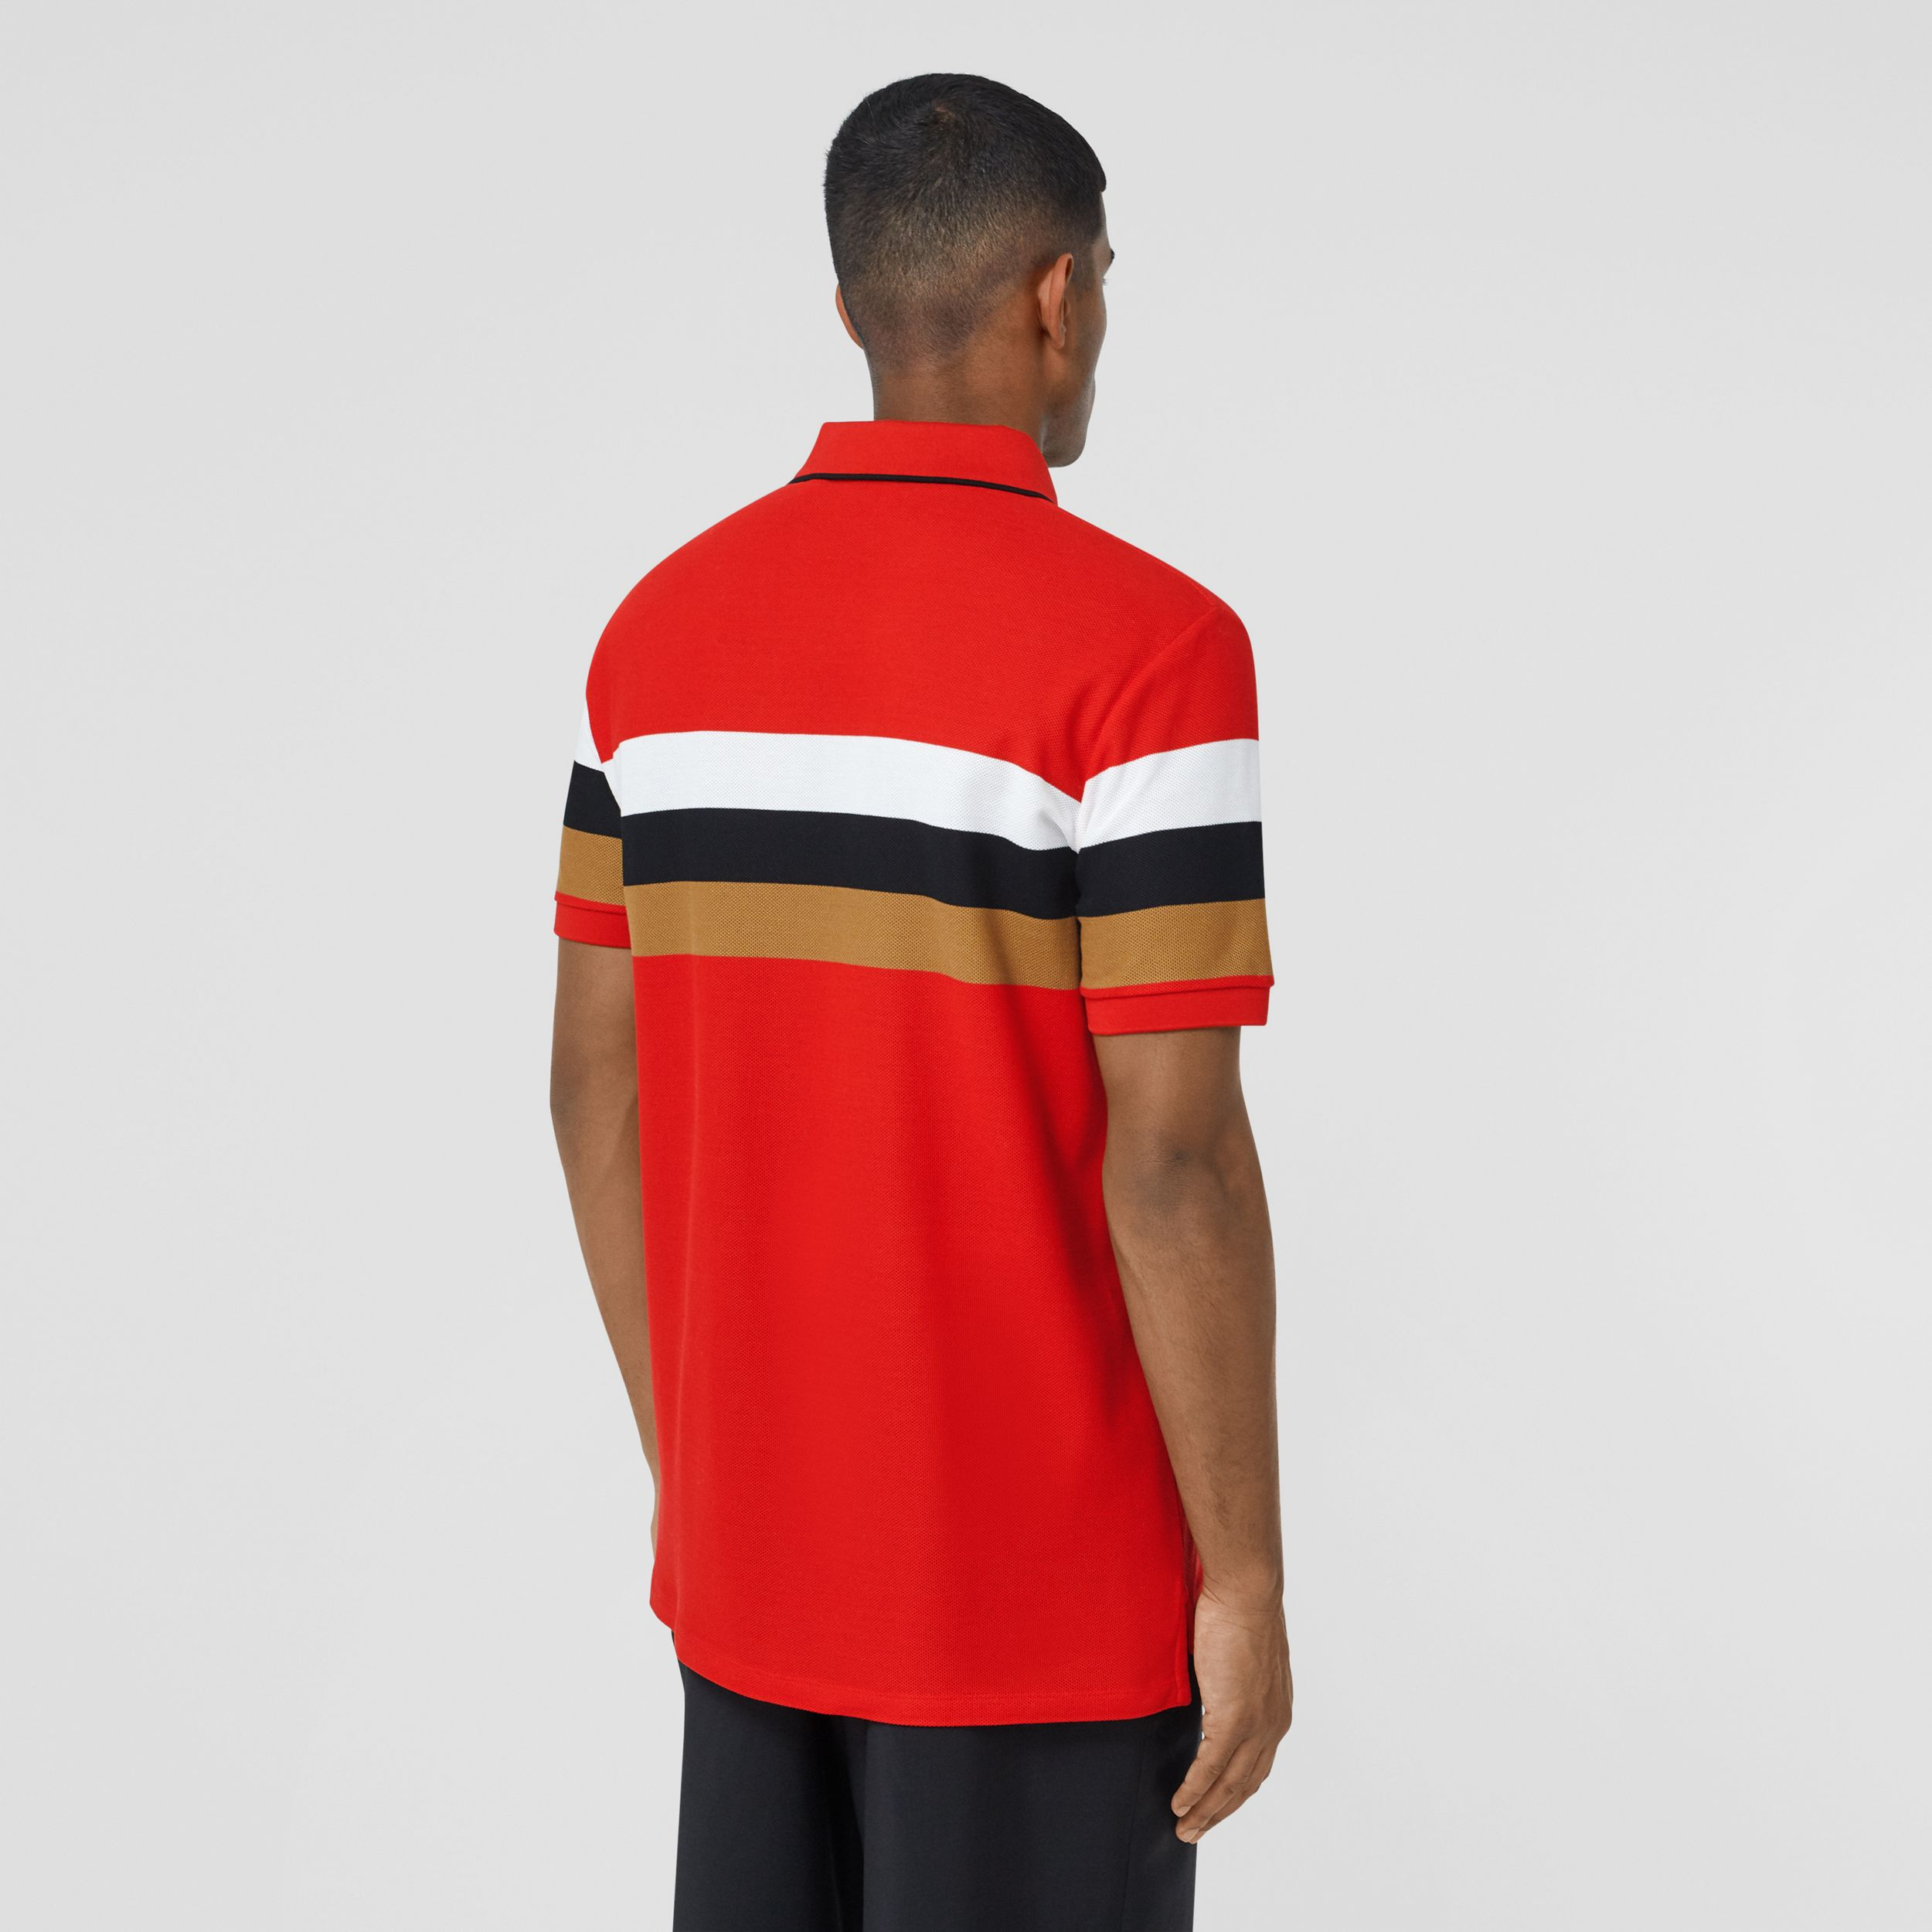 Monogram Motif Striped Cotton Polo Shirt in Bright Red - Men | Burberry - 3